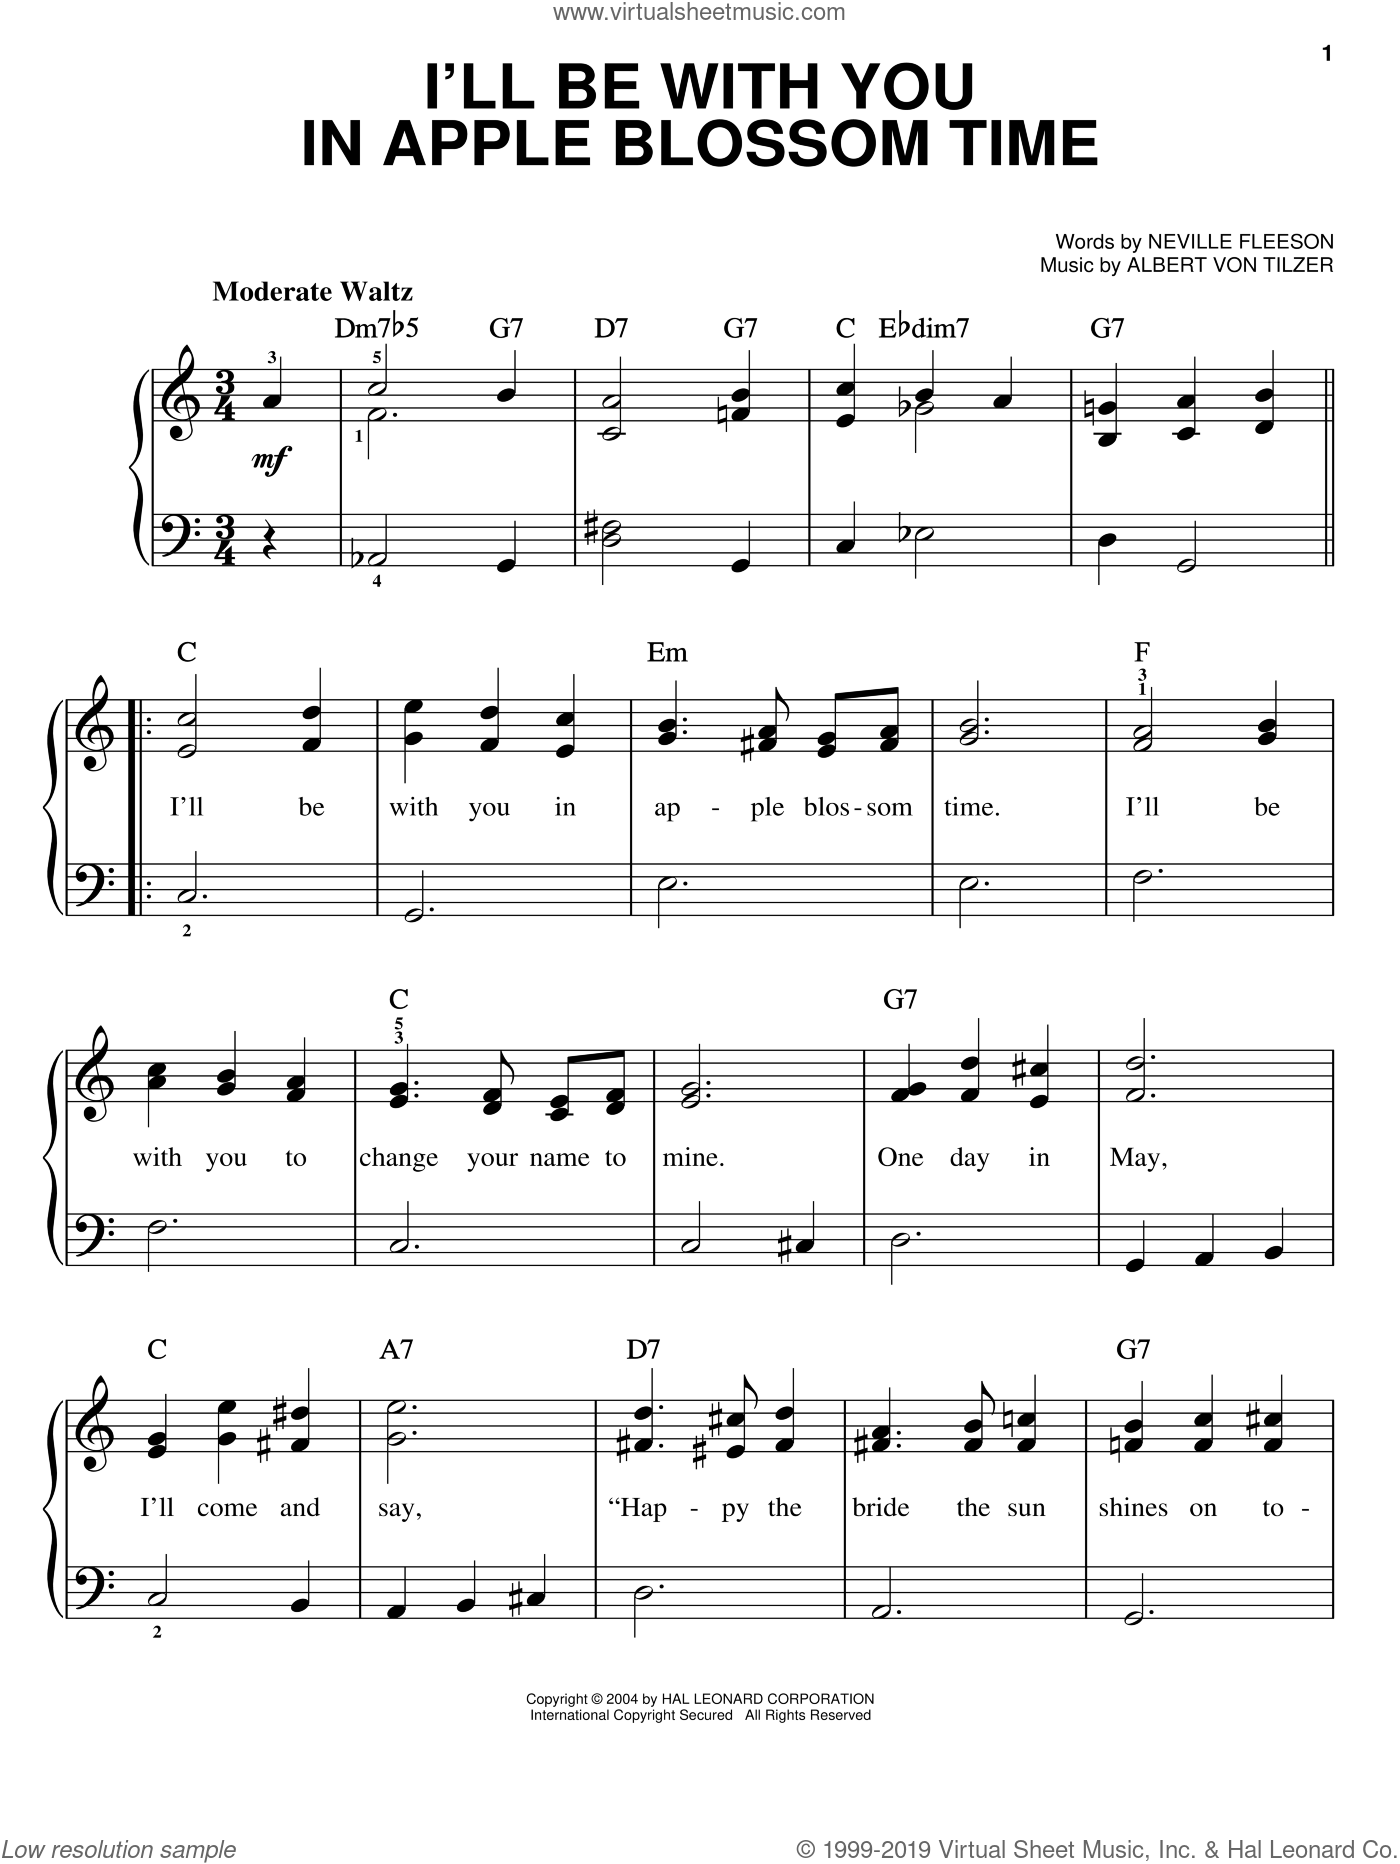 I'll Be With You In Apple Blossom Time sheet music for piano solo (chords) by Albert von Tilzer